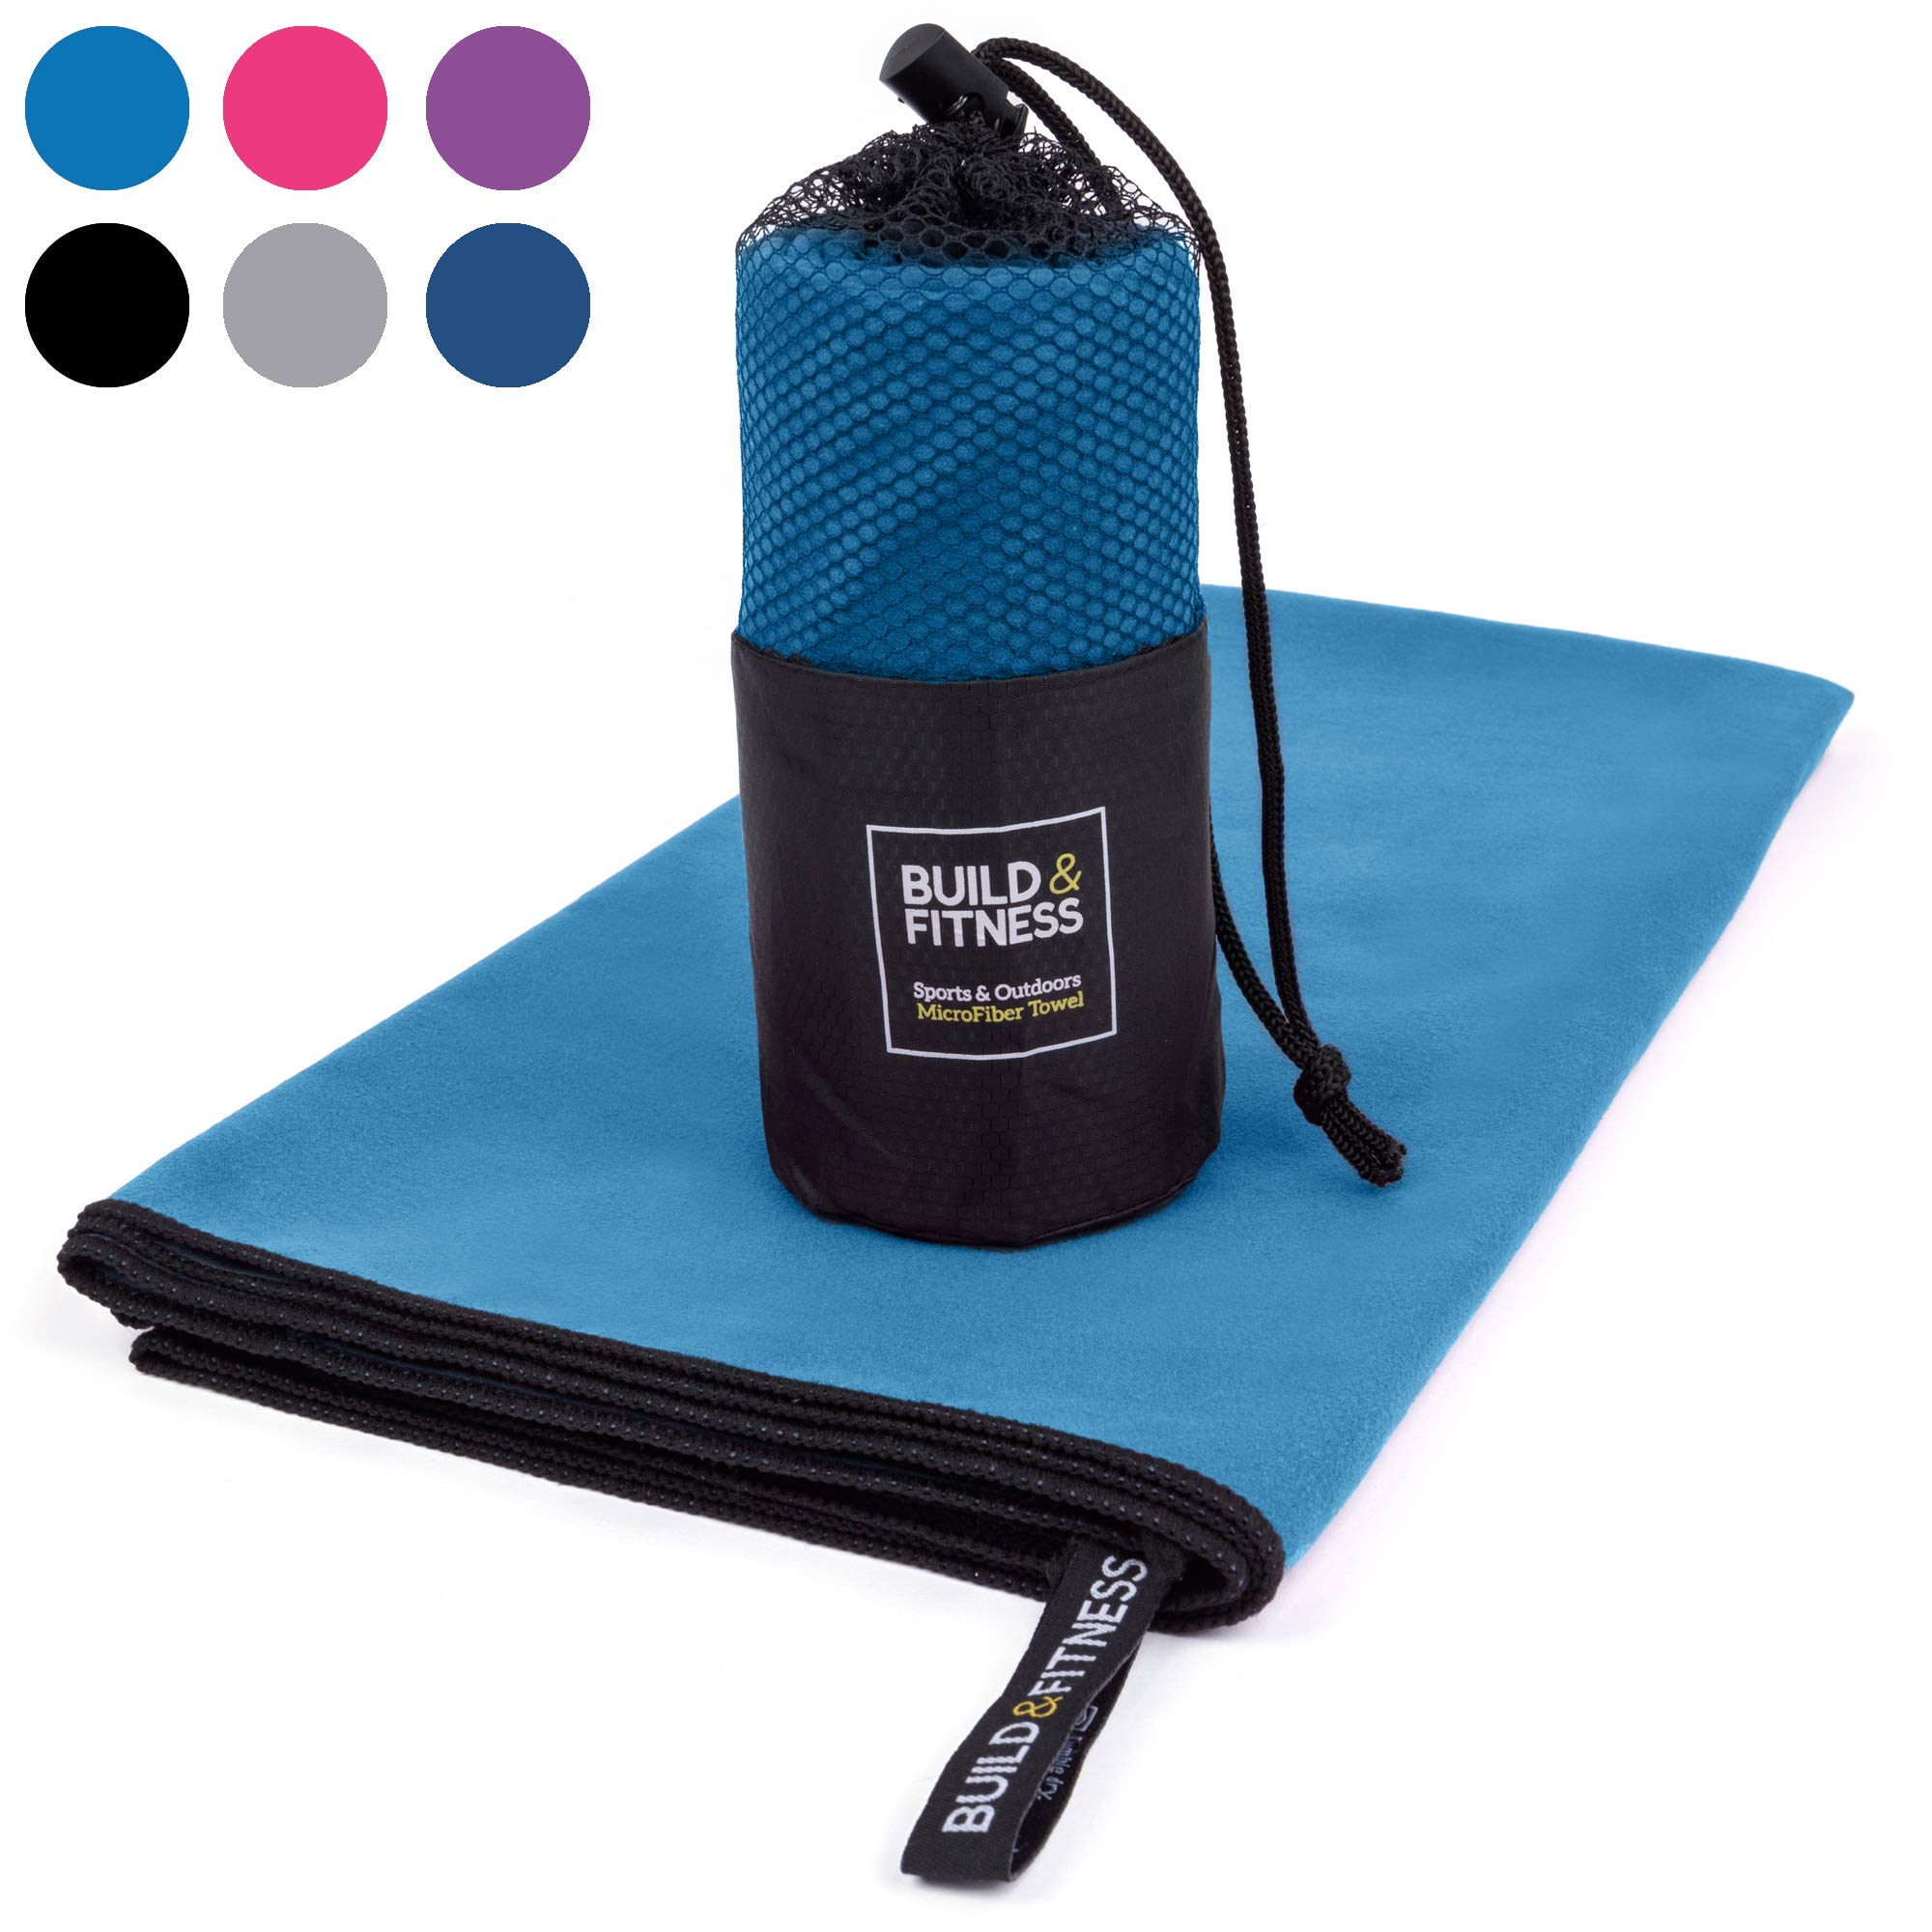 Lightweight Super Absorbent Sport Towel. Quick Drying, Compact. Best Towel for Gym, Swimming, Camping, Beach, Travel, Fitness, Yoga, Sports. Carry Bag